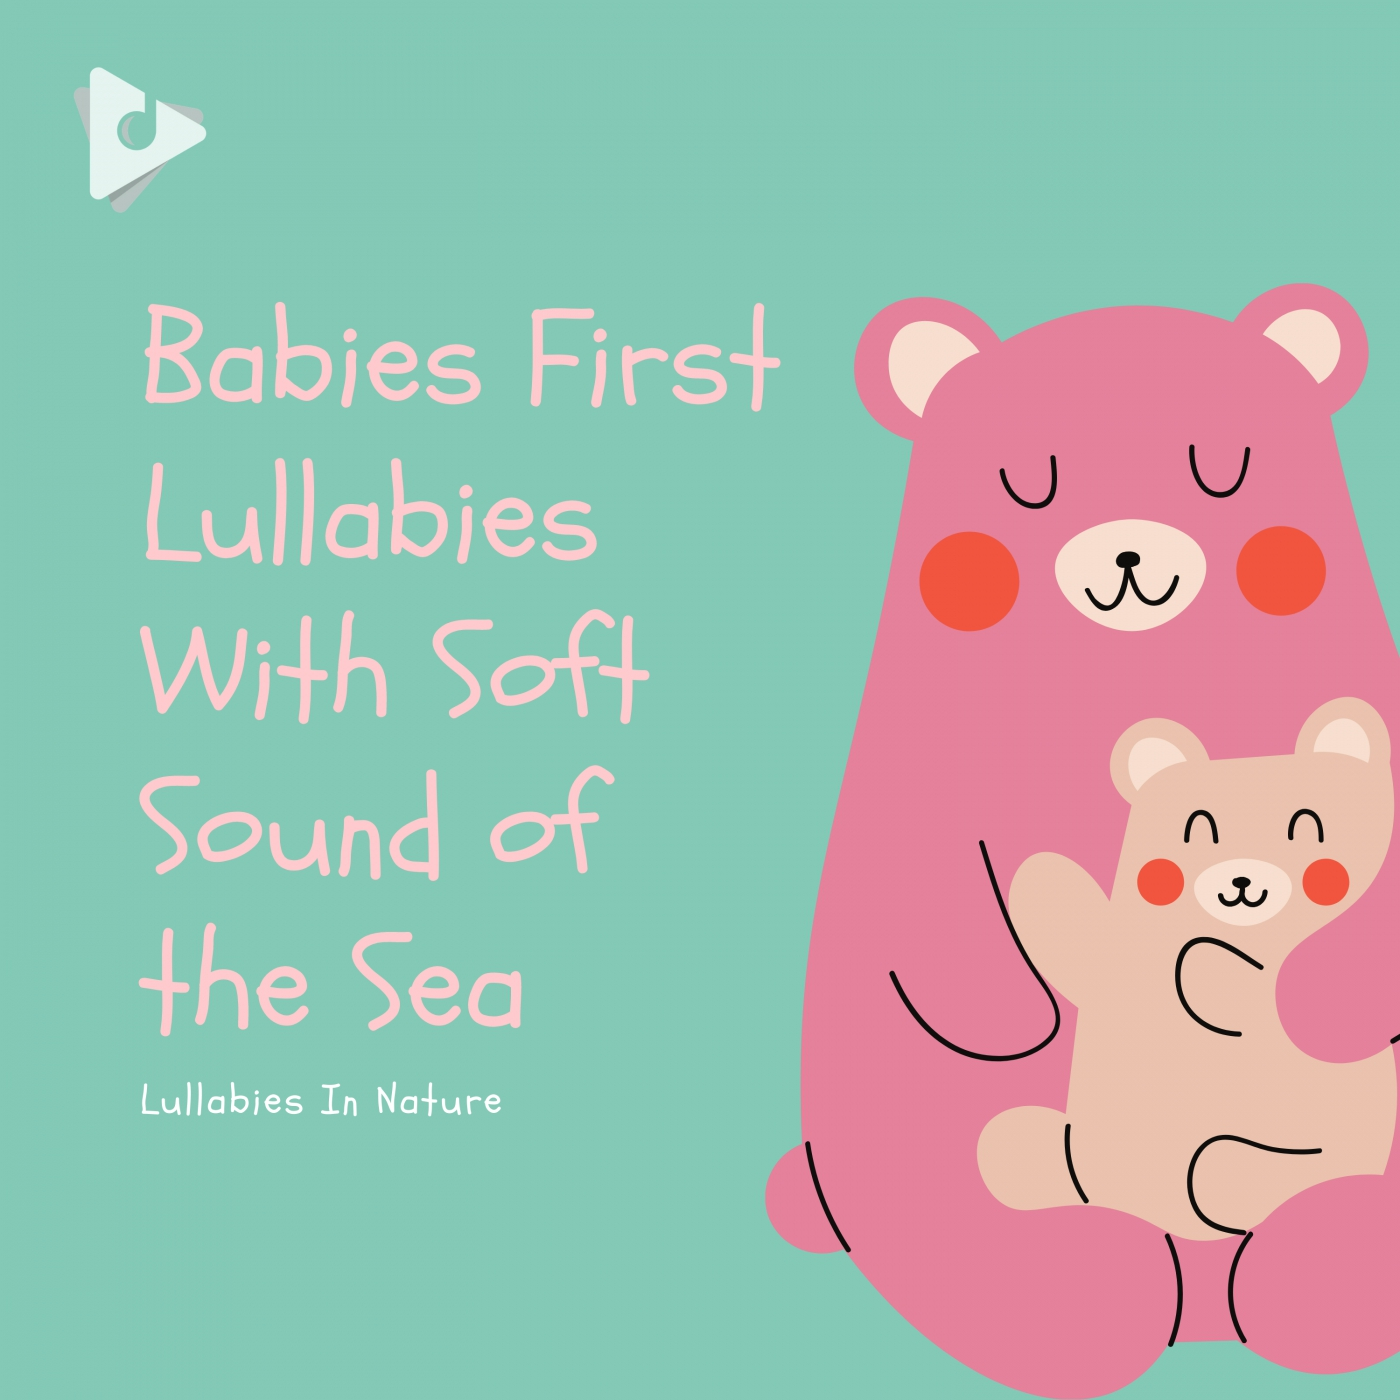 Babies First Lullabies With Soft Sound of the Sea